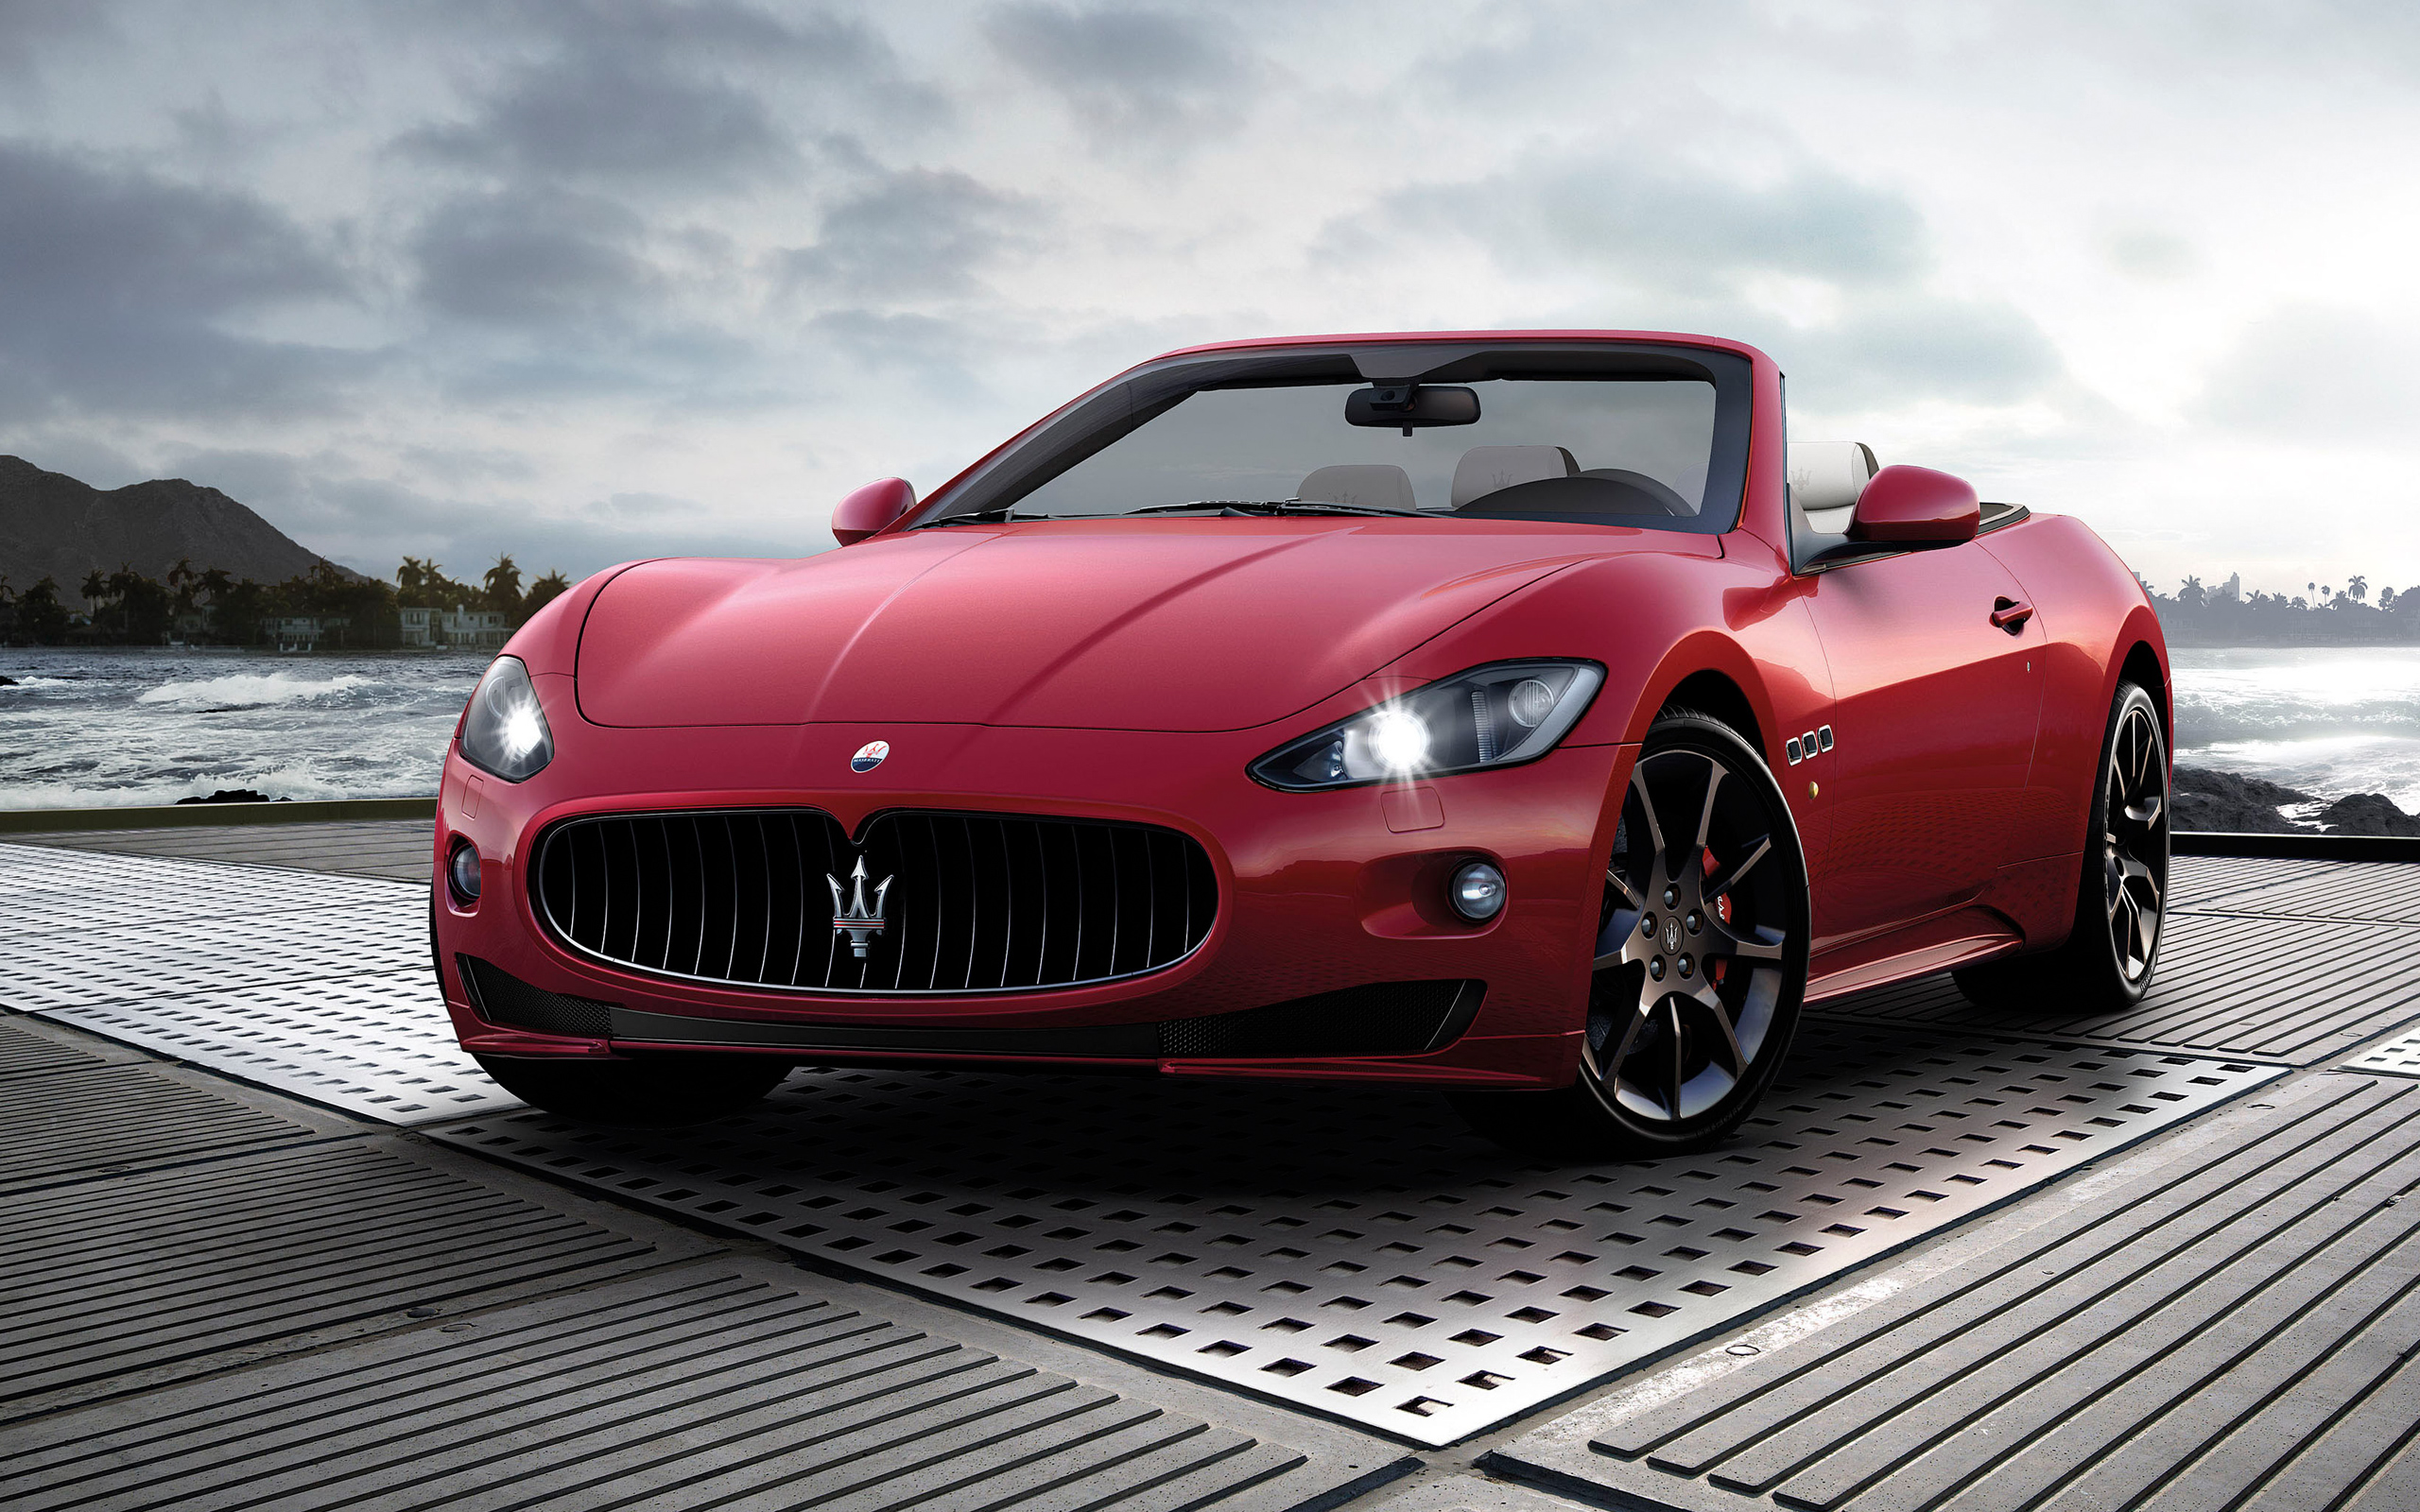 2012 Maserati GranCabrio Sport Wallpapers HD Wallpapers 2560x1600